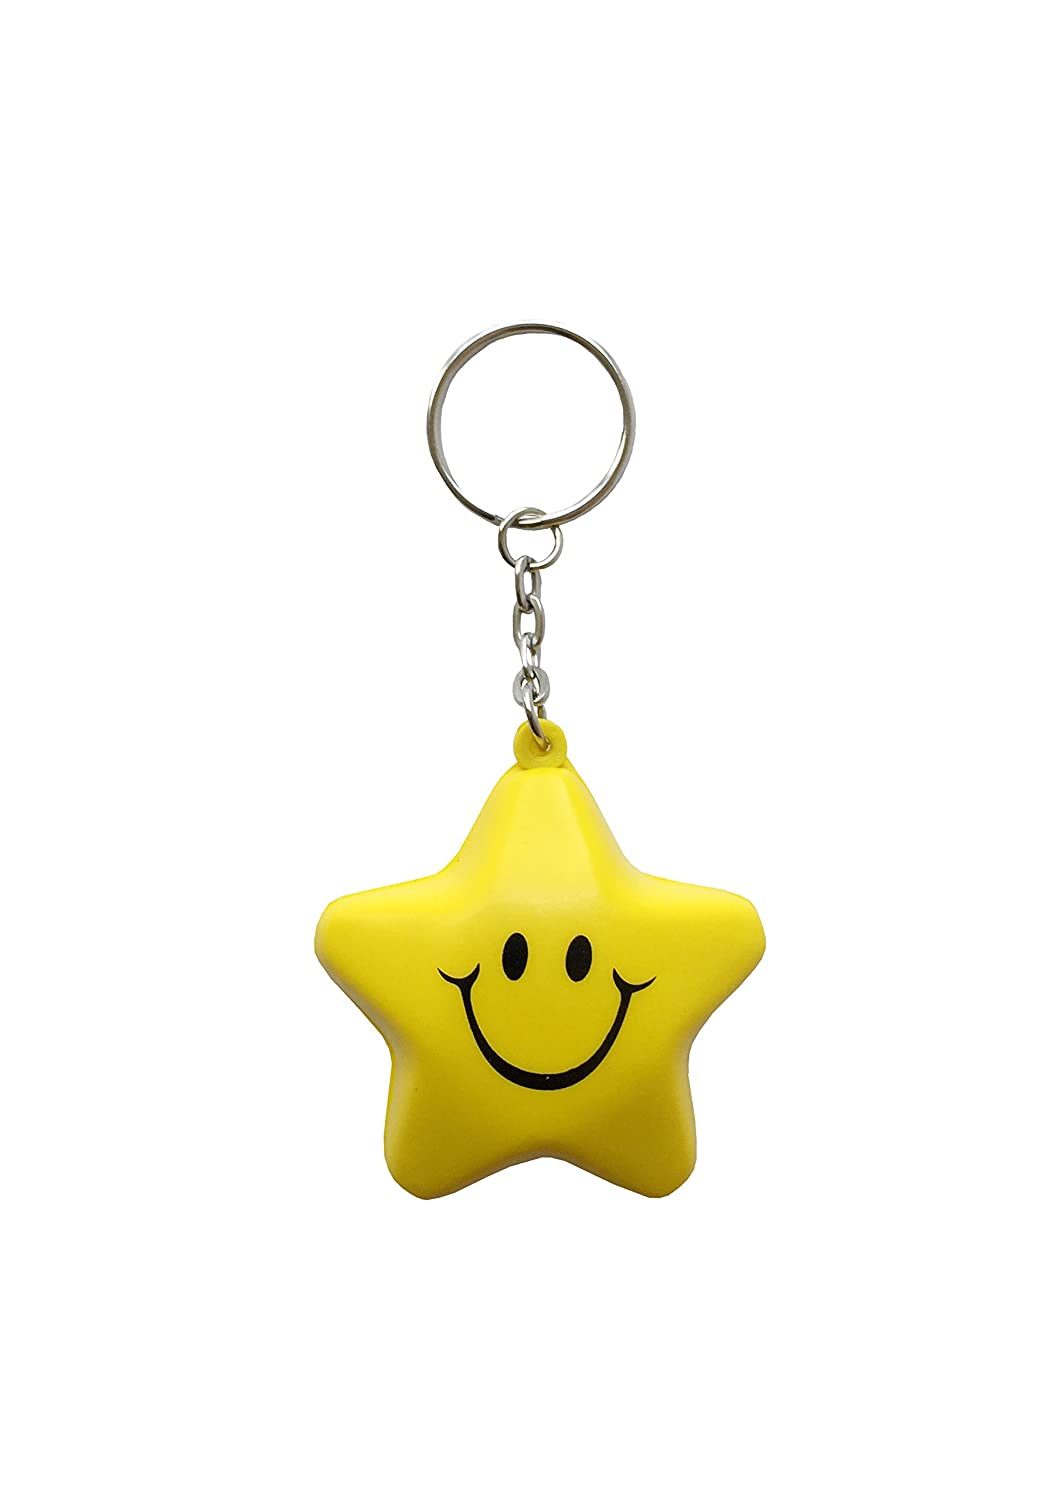 MIni Emoji Smiley Star Squishy - Llavero: Amazon.es: Coche y ...